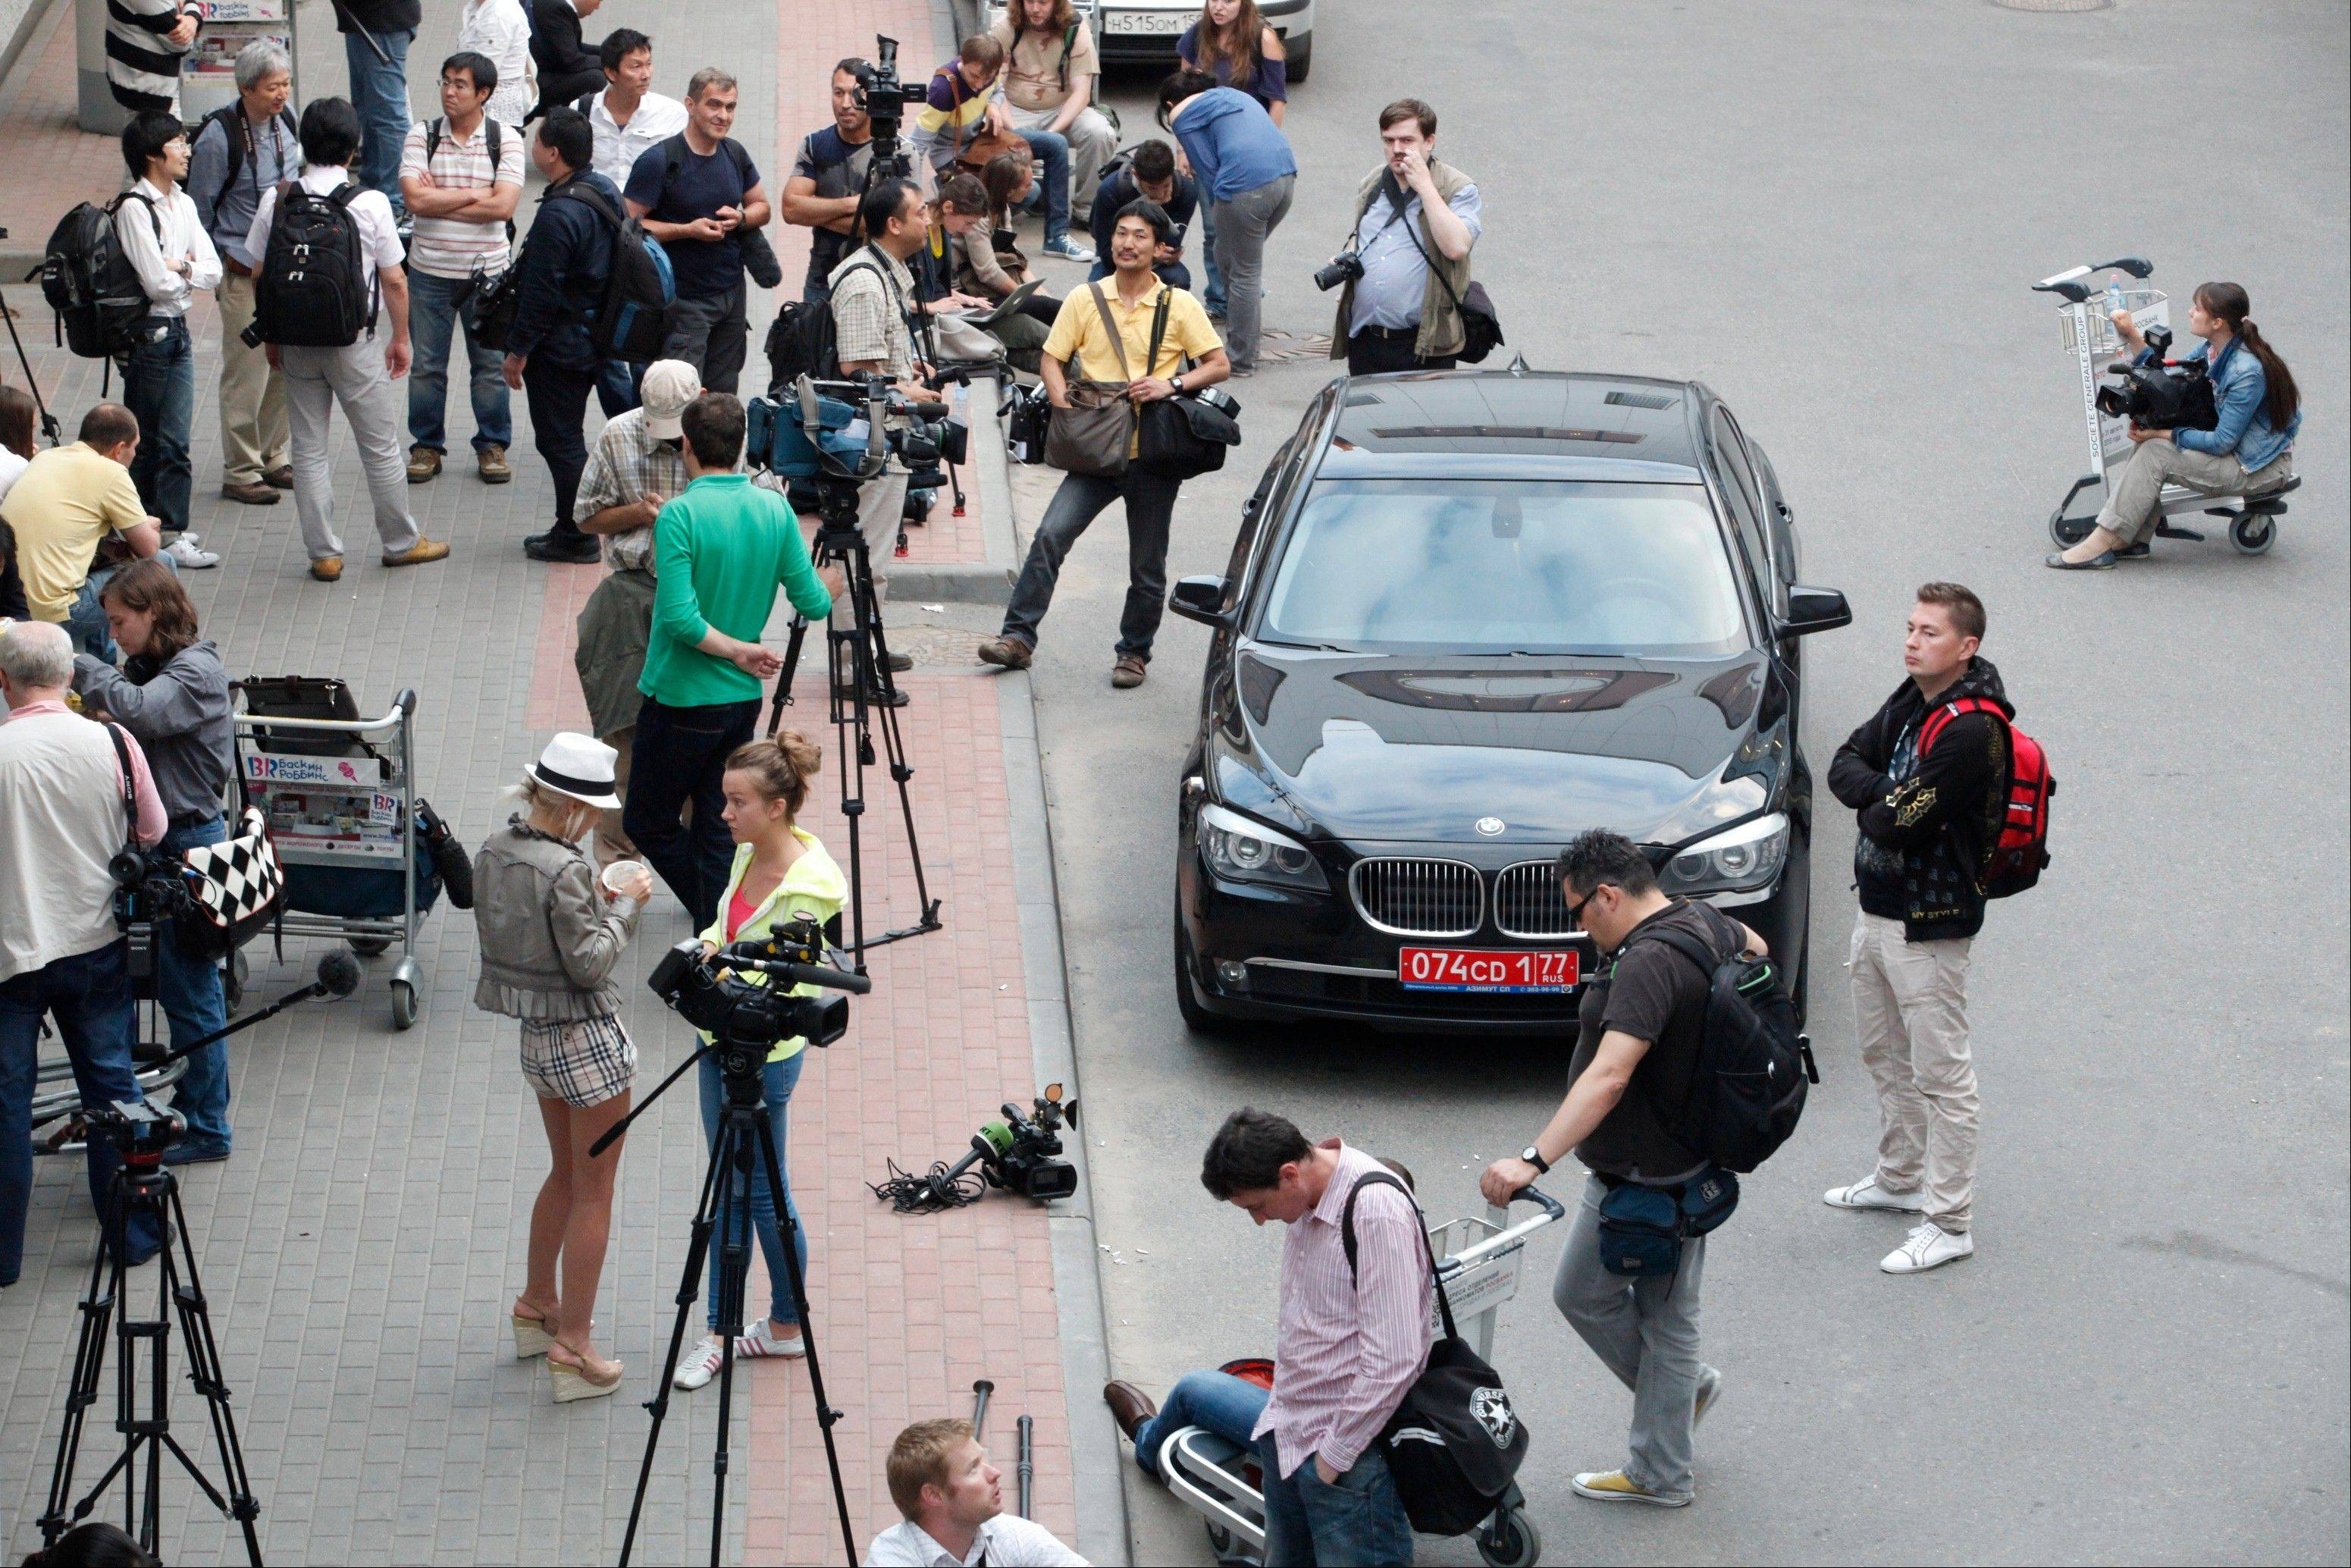 Journalists stand next to Ecuador's Ambassador's car while waiting for the arrival of Edward Snowden, a former CIA employee who recently leaked top-secret documents about sweeping U.S. surveillance programs, at Sheremetyevo airport, just outside Moscow, Russia, Sunday,